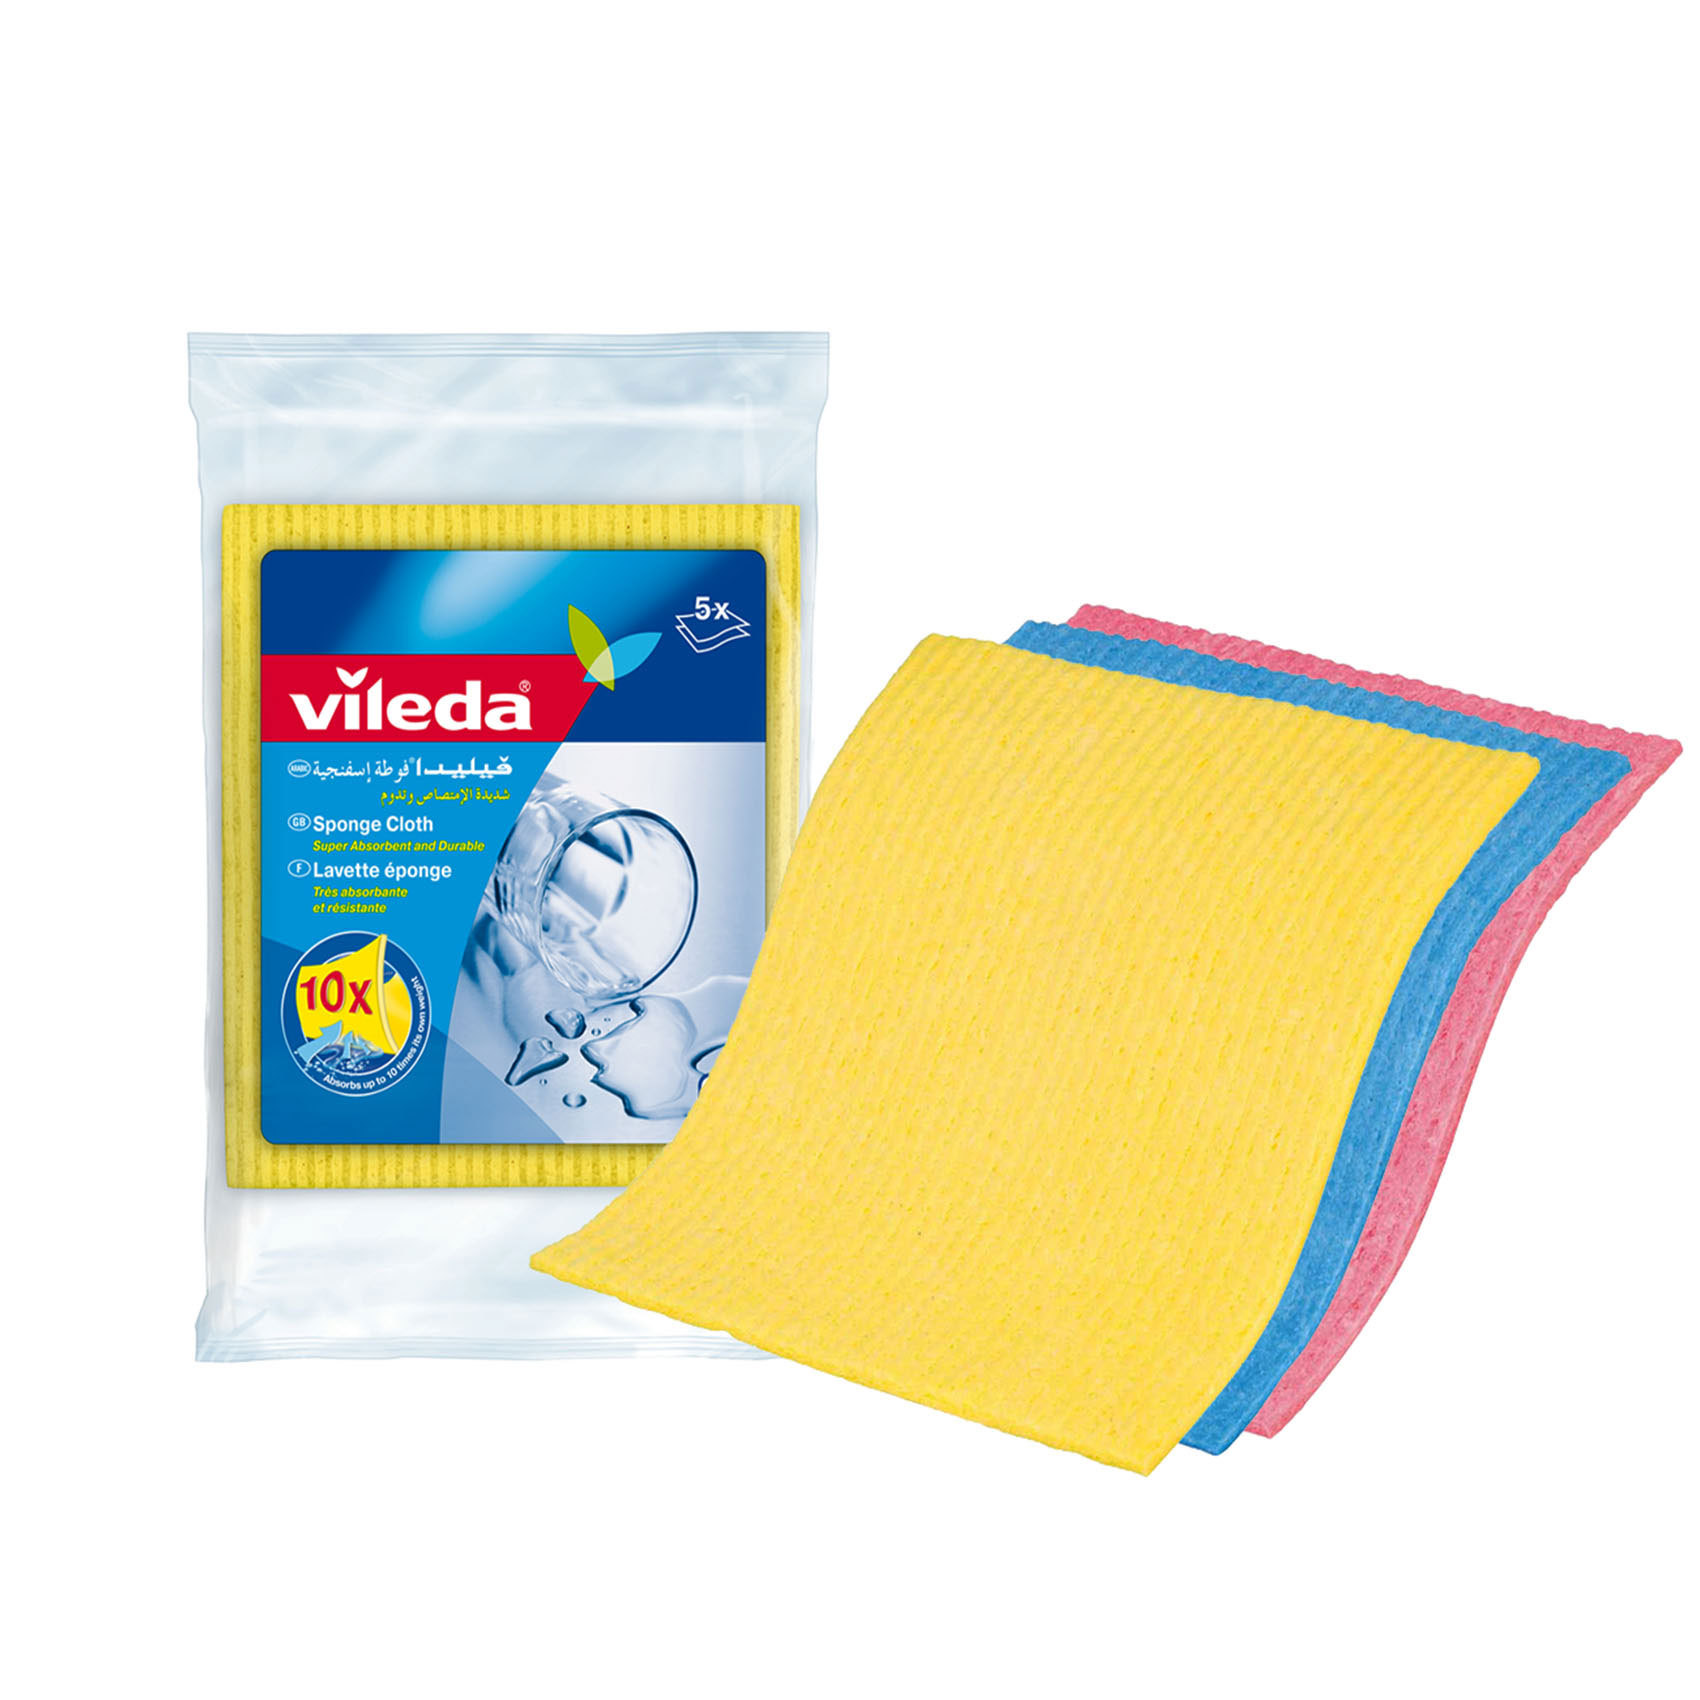 VILEDA SPONGE CLOTH X5